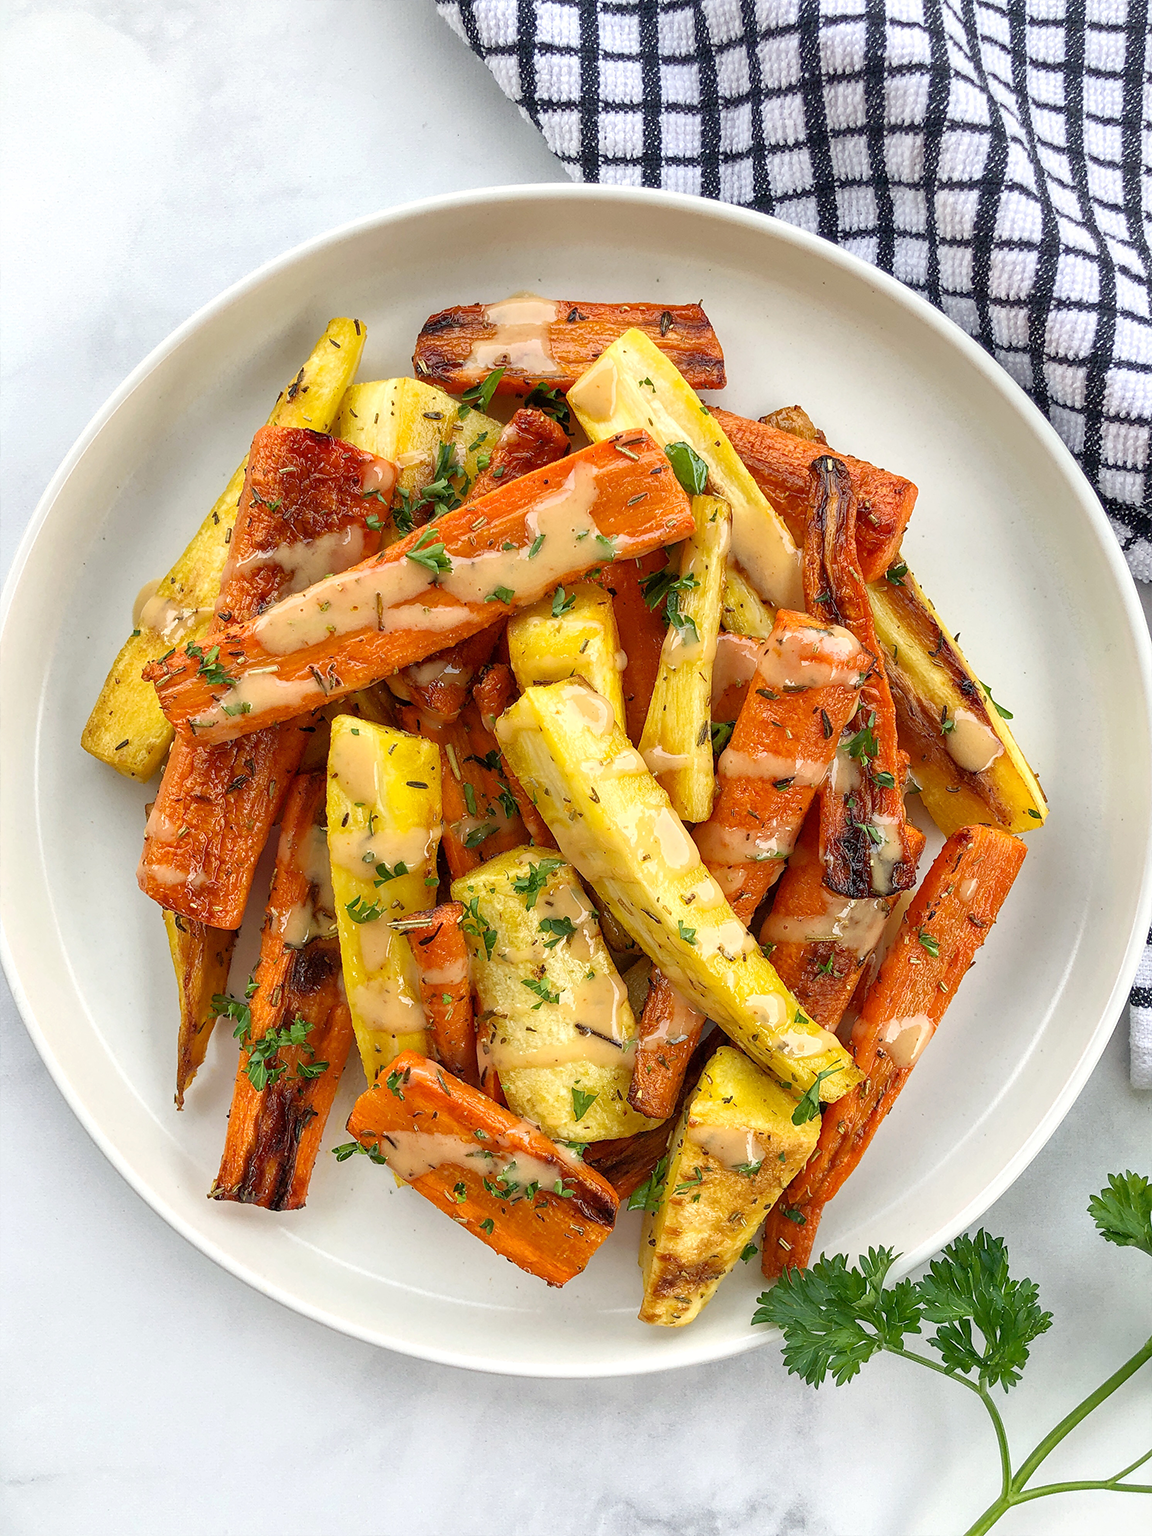 Roasted Root Vegetables with Parsley